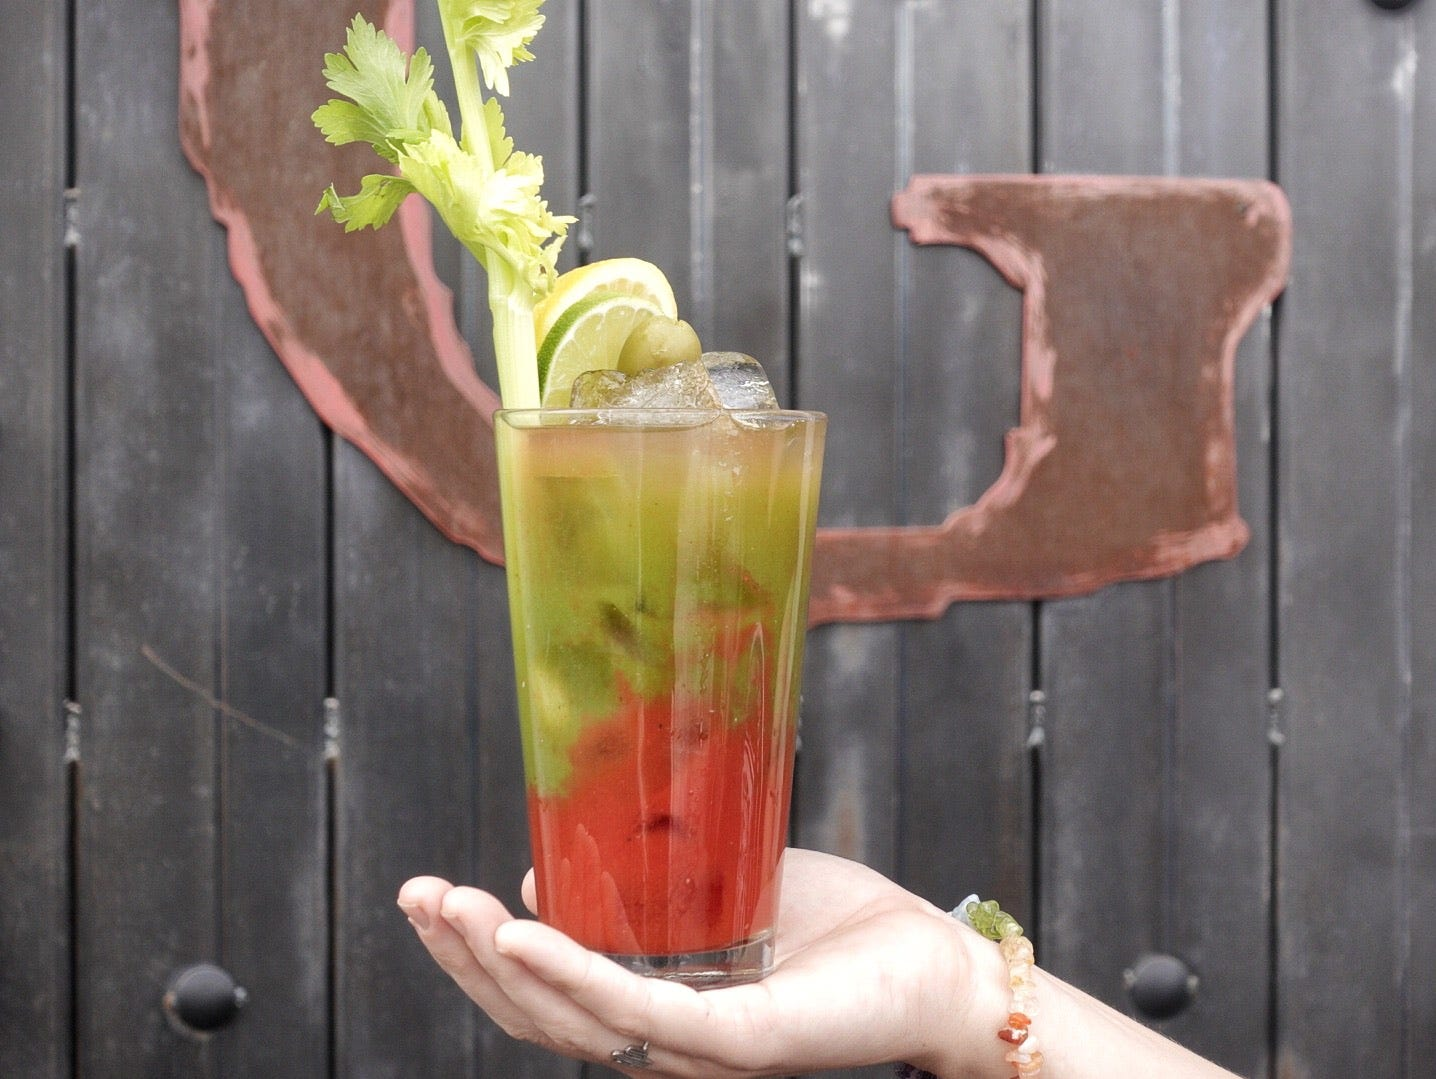 The new Christmas-style Bloody Mary at Taco Guild